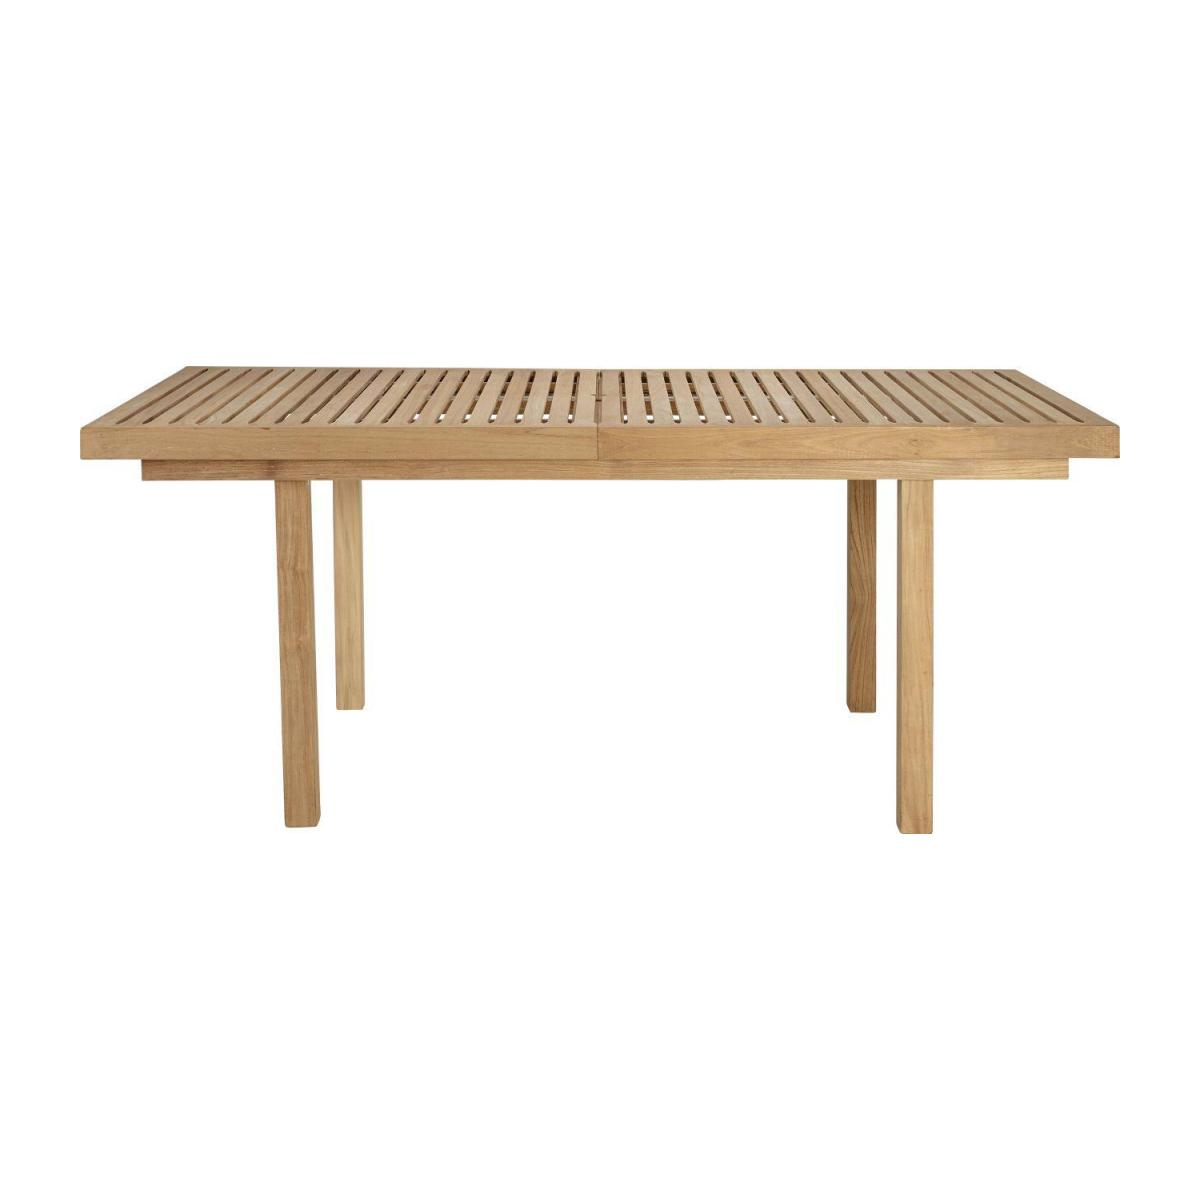 Tiek - Table de Jardin à Rallonges en Teck - Naturel - Habitat - Habitat